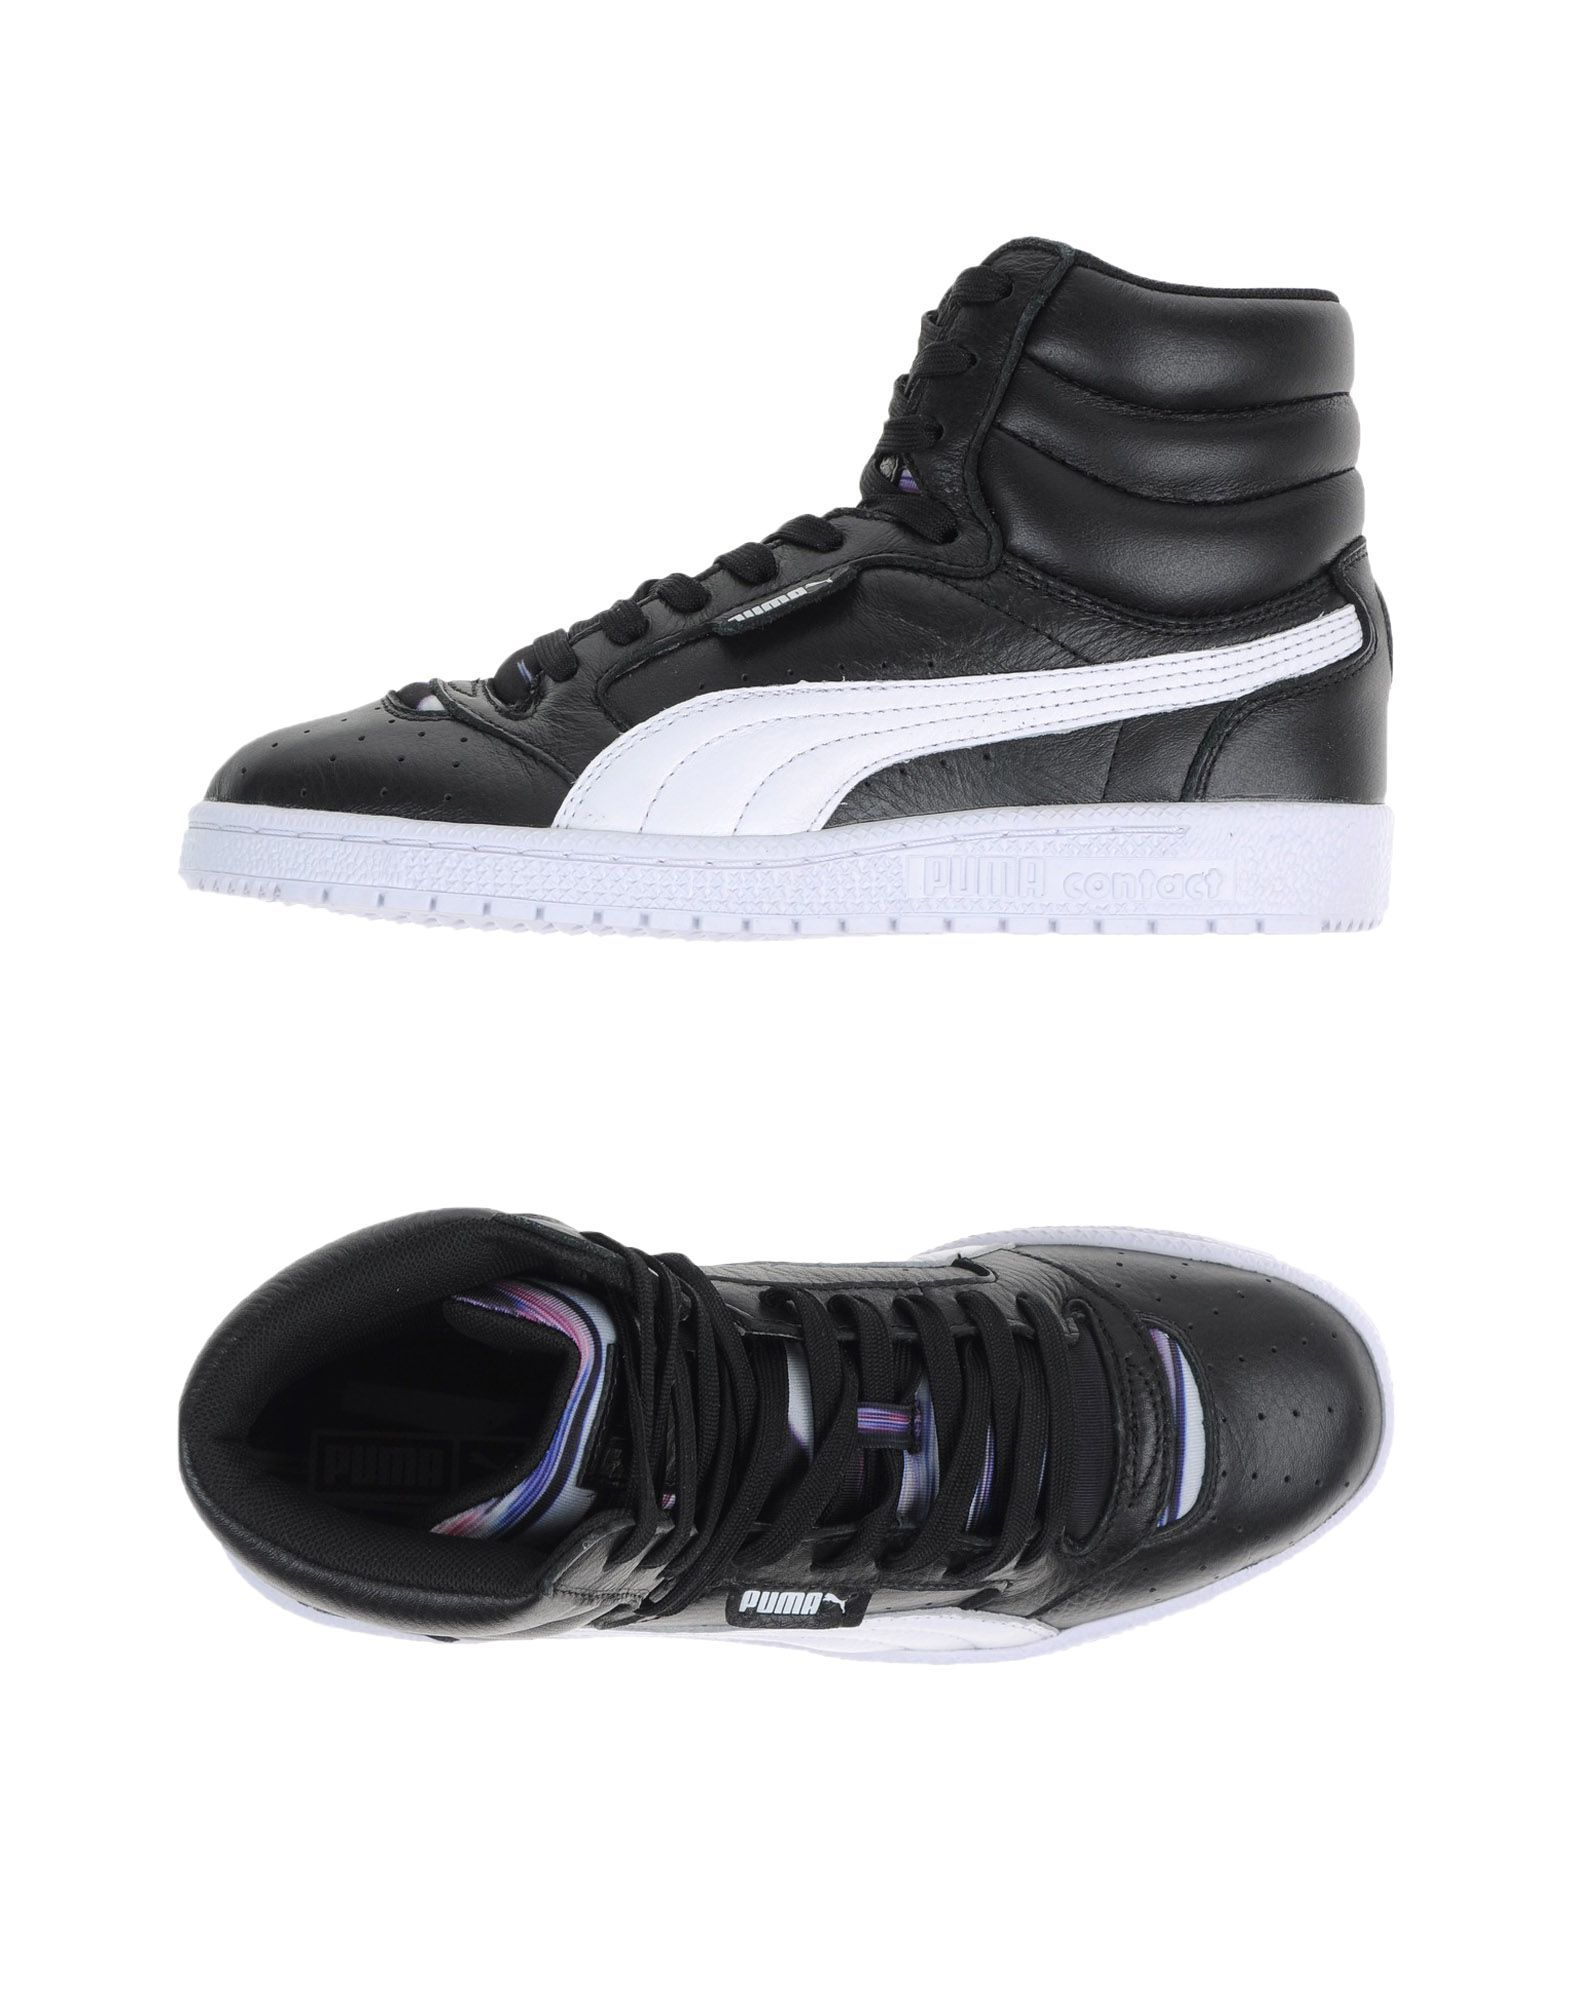 Puma Black Leather High-top & sneakers